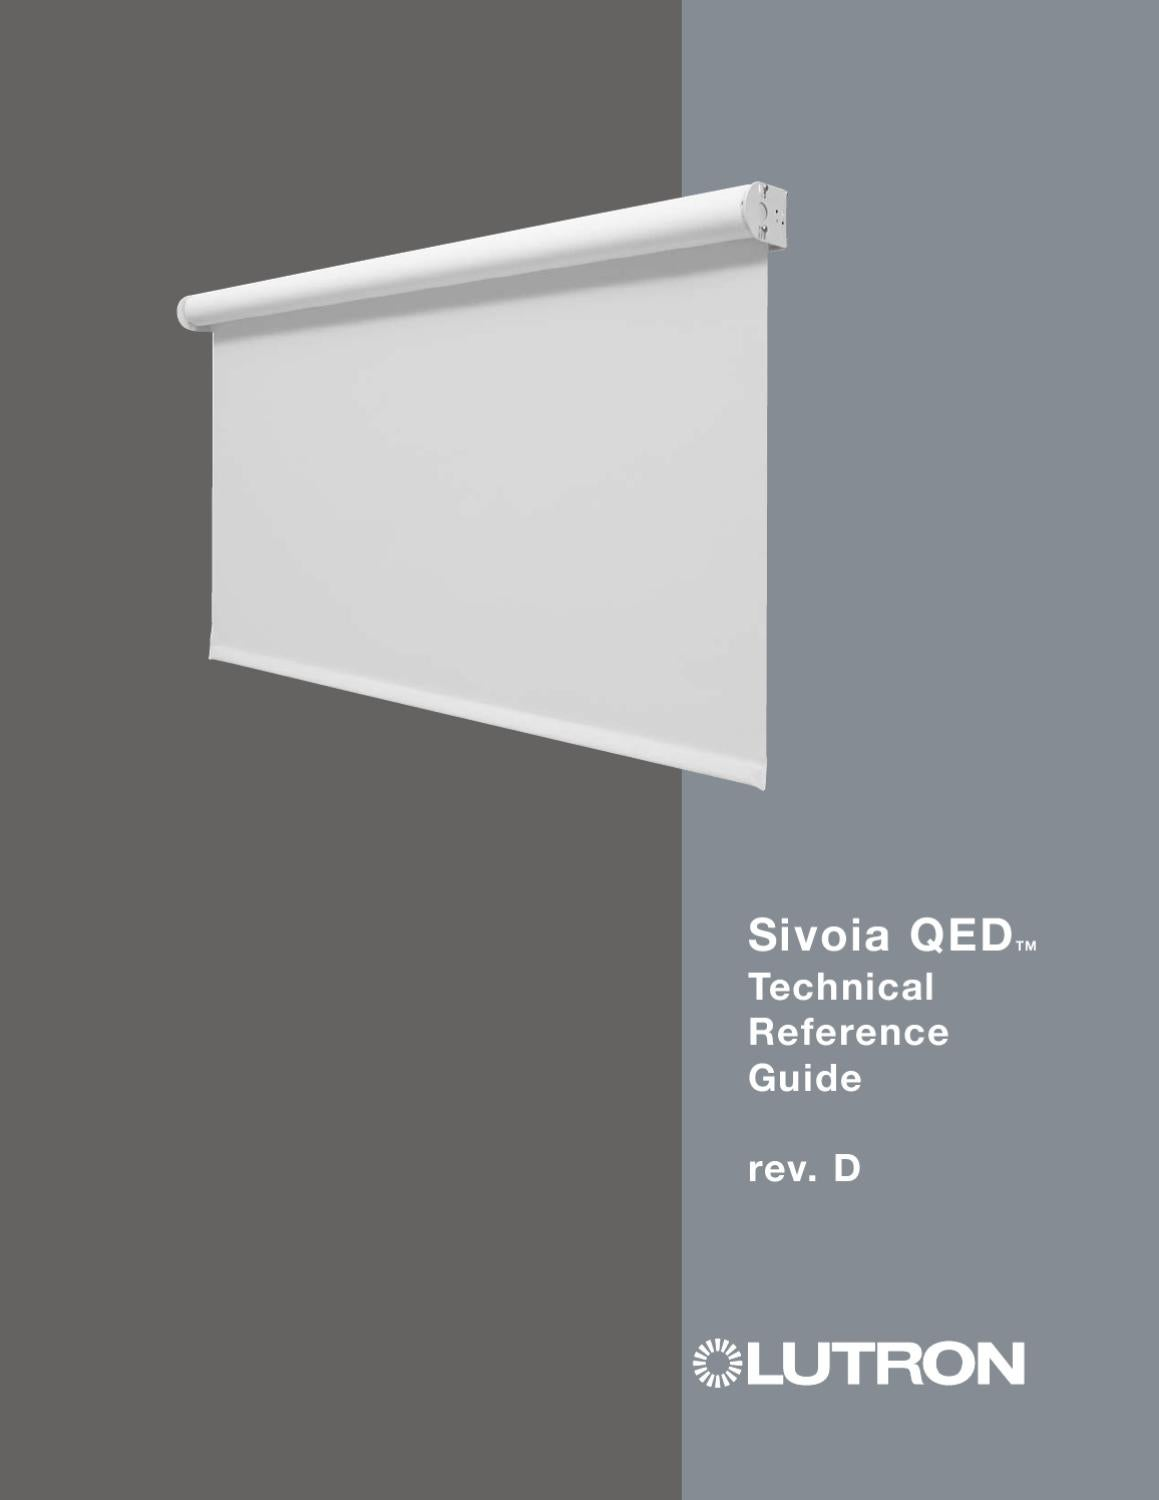 qed wiring diagram sivoia qed technical reference guide by exclusive lighting  sivoia qed technical reference guide by